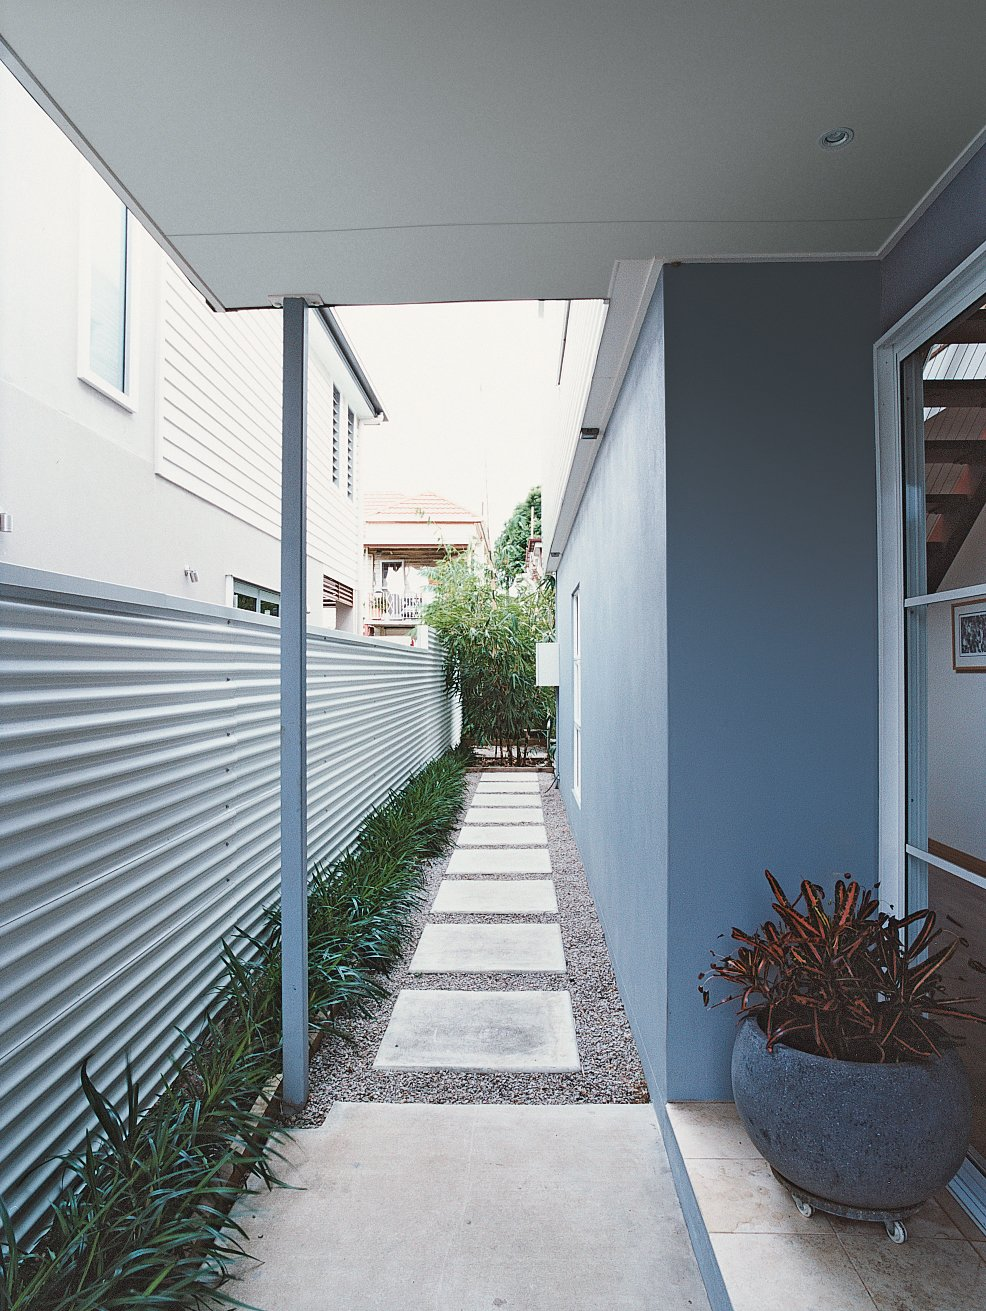 Clayden made the most of his modest lot by building as close to the perimeter as local zoning codes allow. Tagged: Side Yard, Hardscapes, Metal Fence, Horizontal Fence, and Outdoor. Minimalist Bachelor Pad in Brisbane - Photo 3 of 8